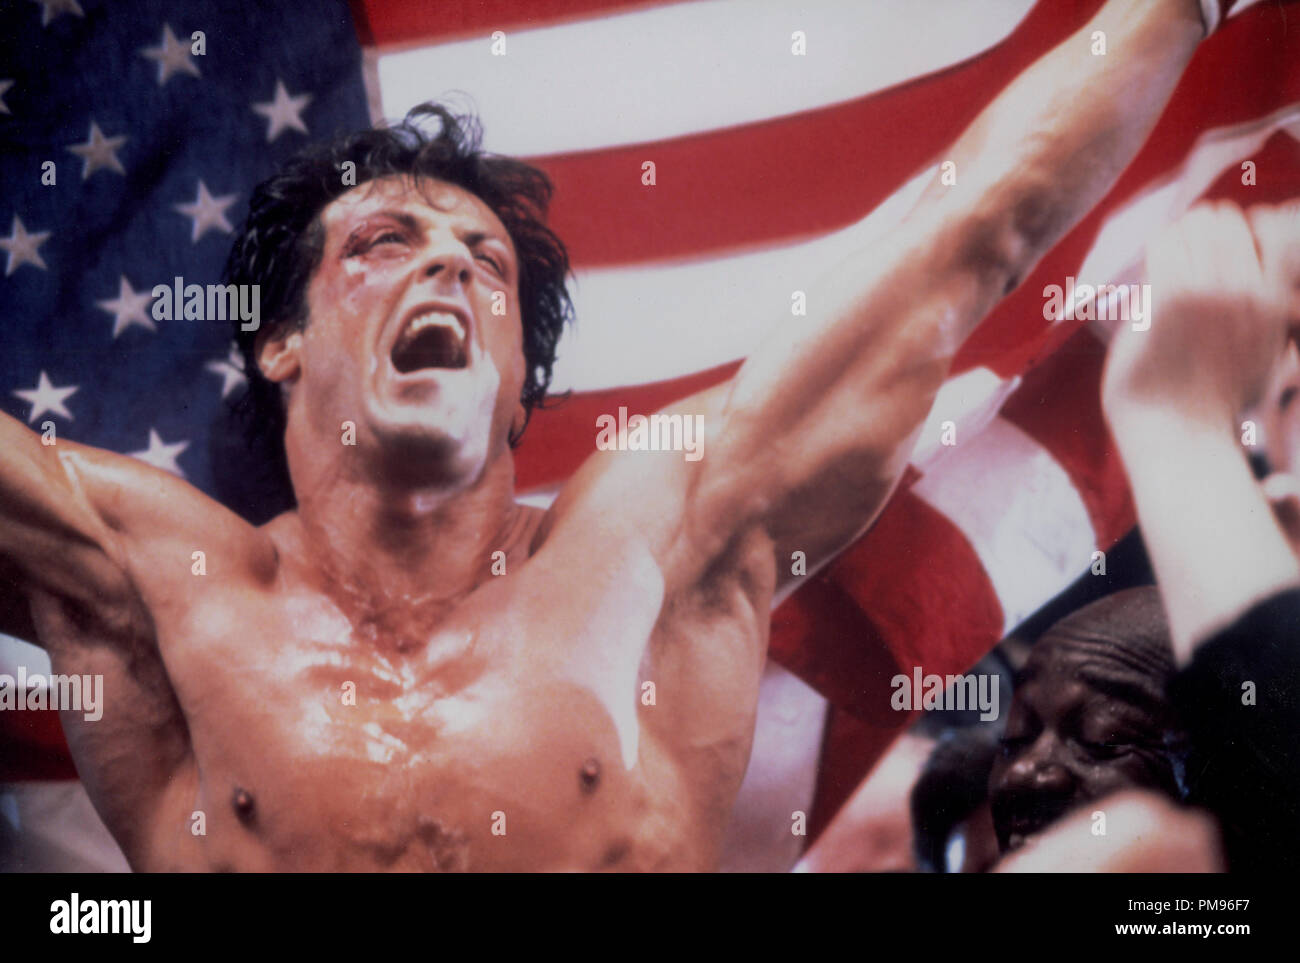 """Studio Publicity Still from """"Rocky IV"""" Sylvester Stallone © 1985 MGM/UA  All Rights Reserved   File Reference # 31703103THA  For Editorial Use Only Stock Photo"""